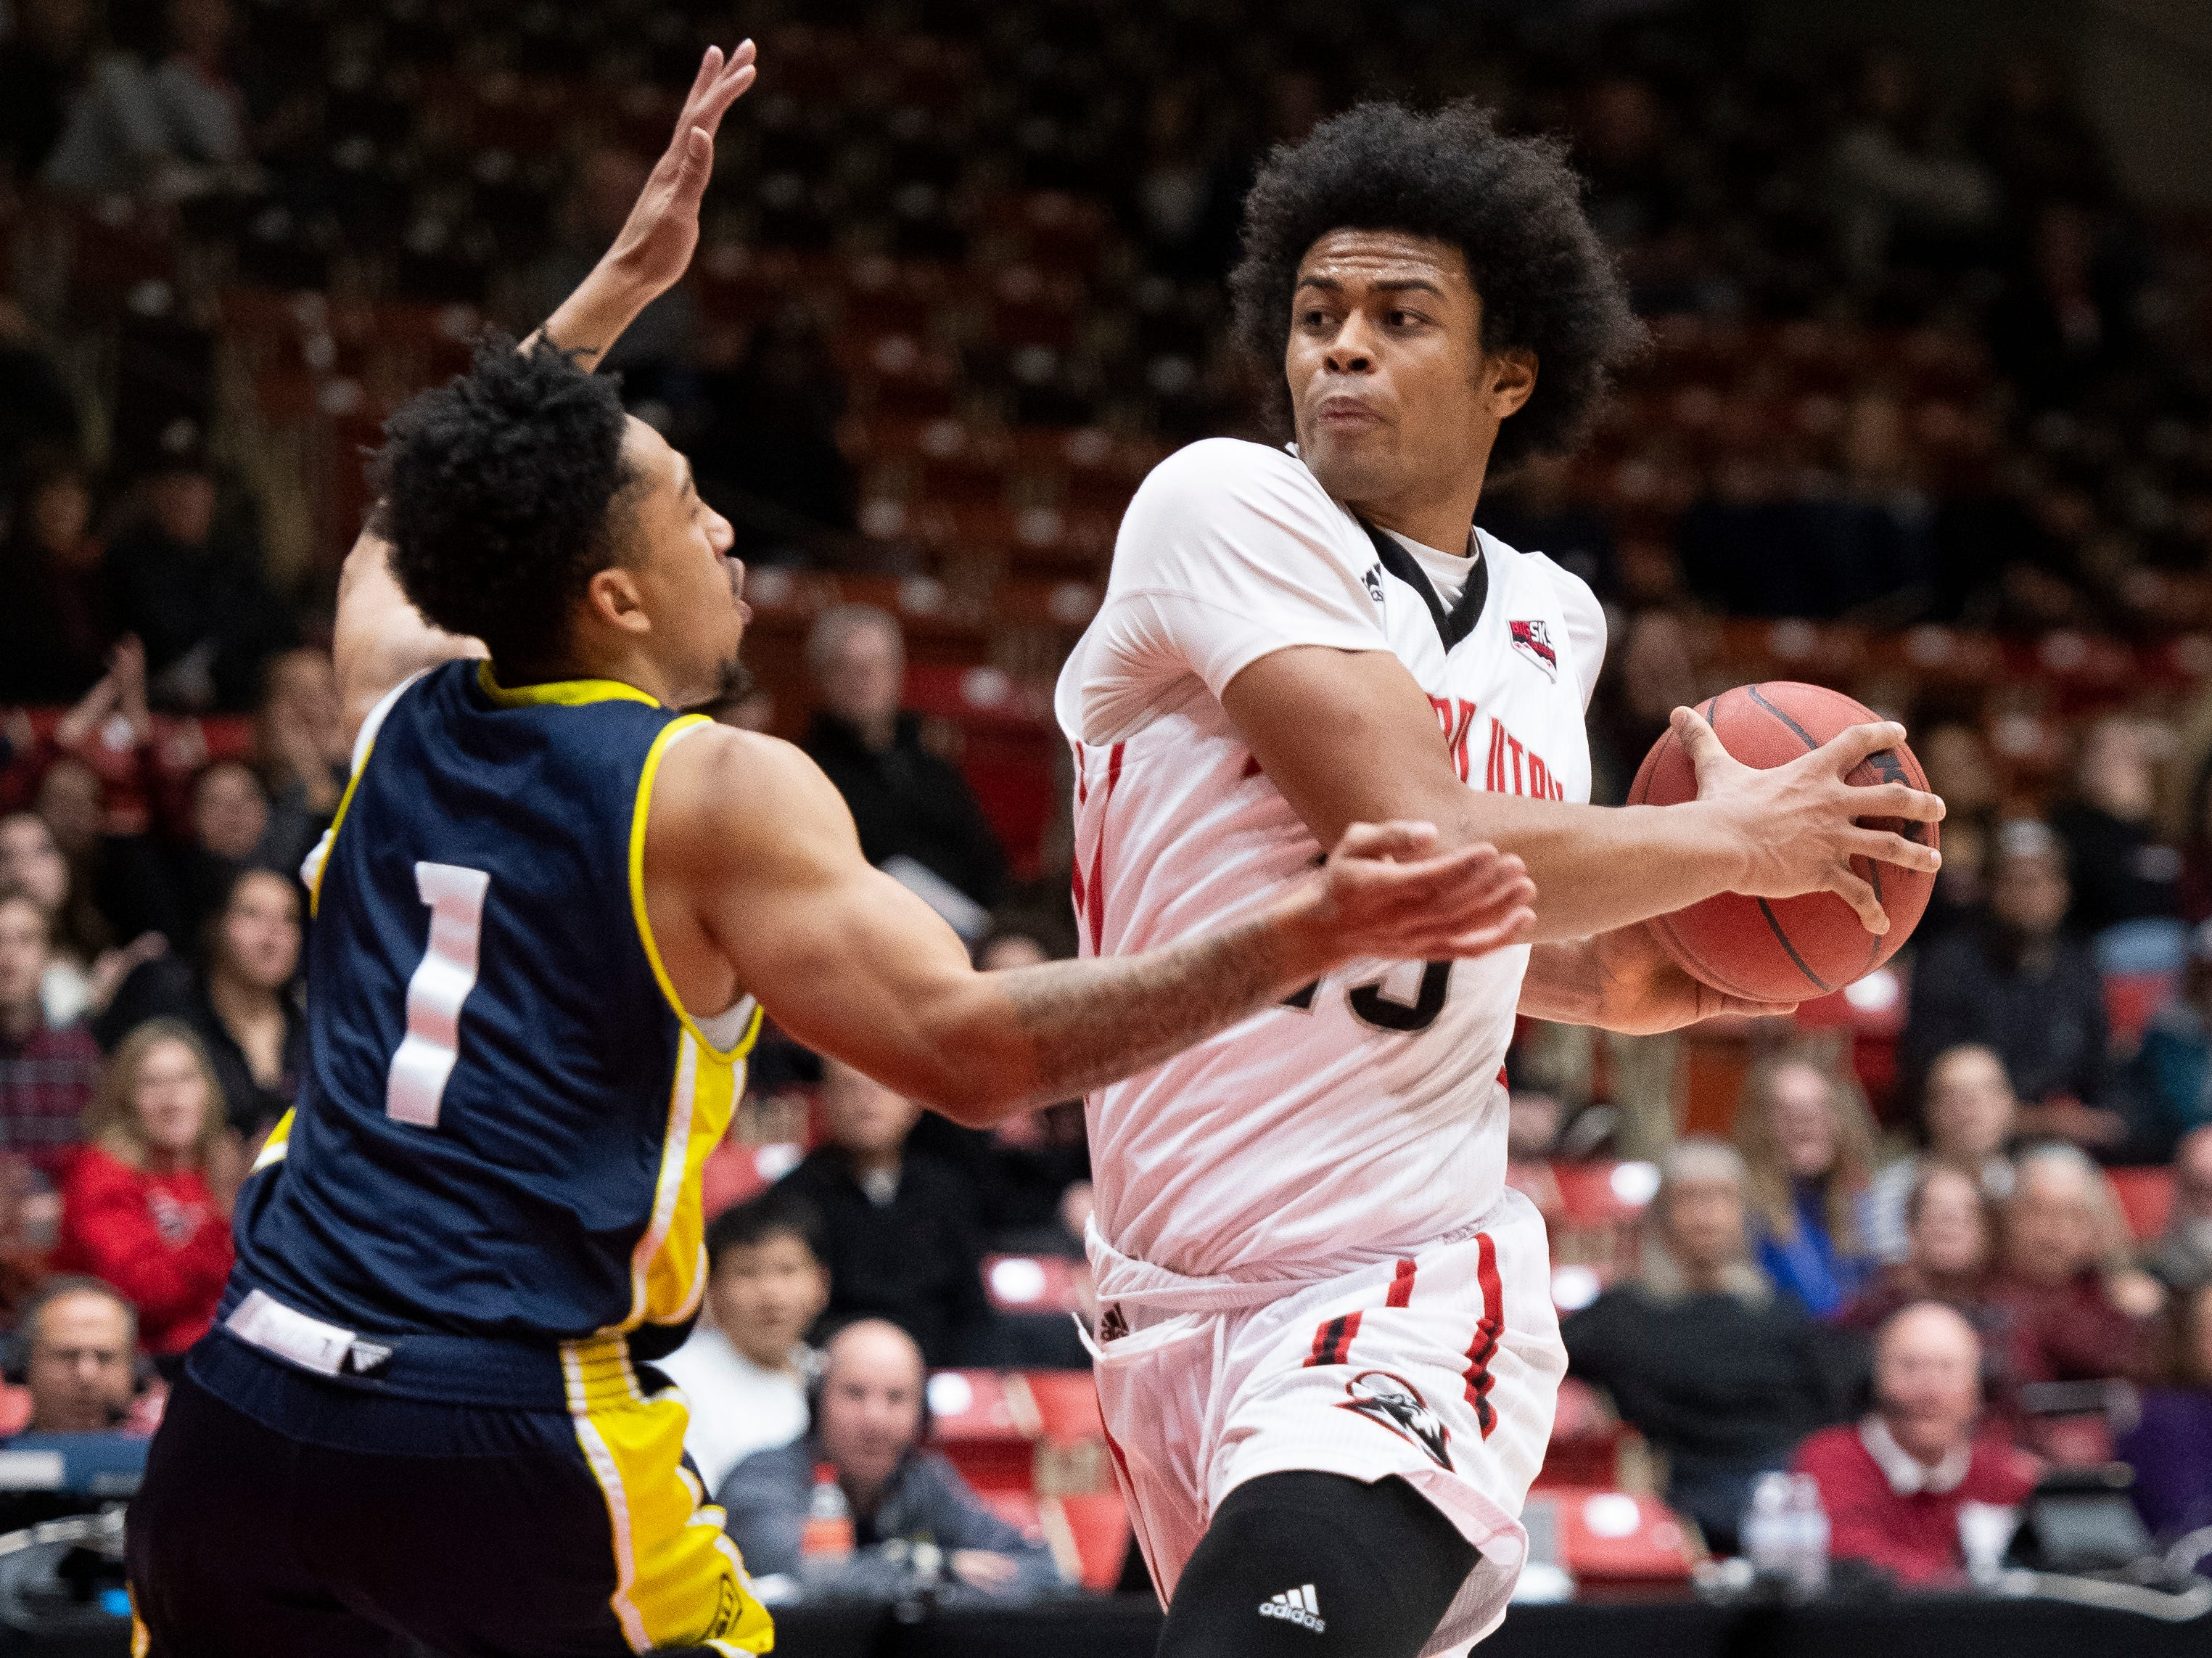 Southern Utah University freshman Harrison Butler (15) moves the ball against rival Northern Arizona at the America First Event Center Saturday, January 12, 2019. SUU won, 84-82.